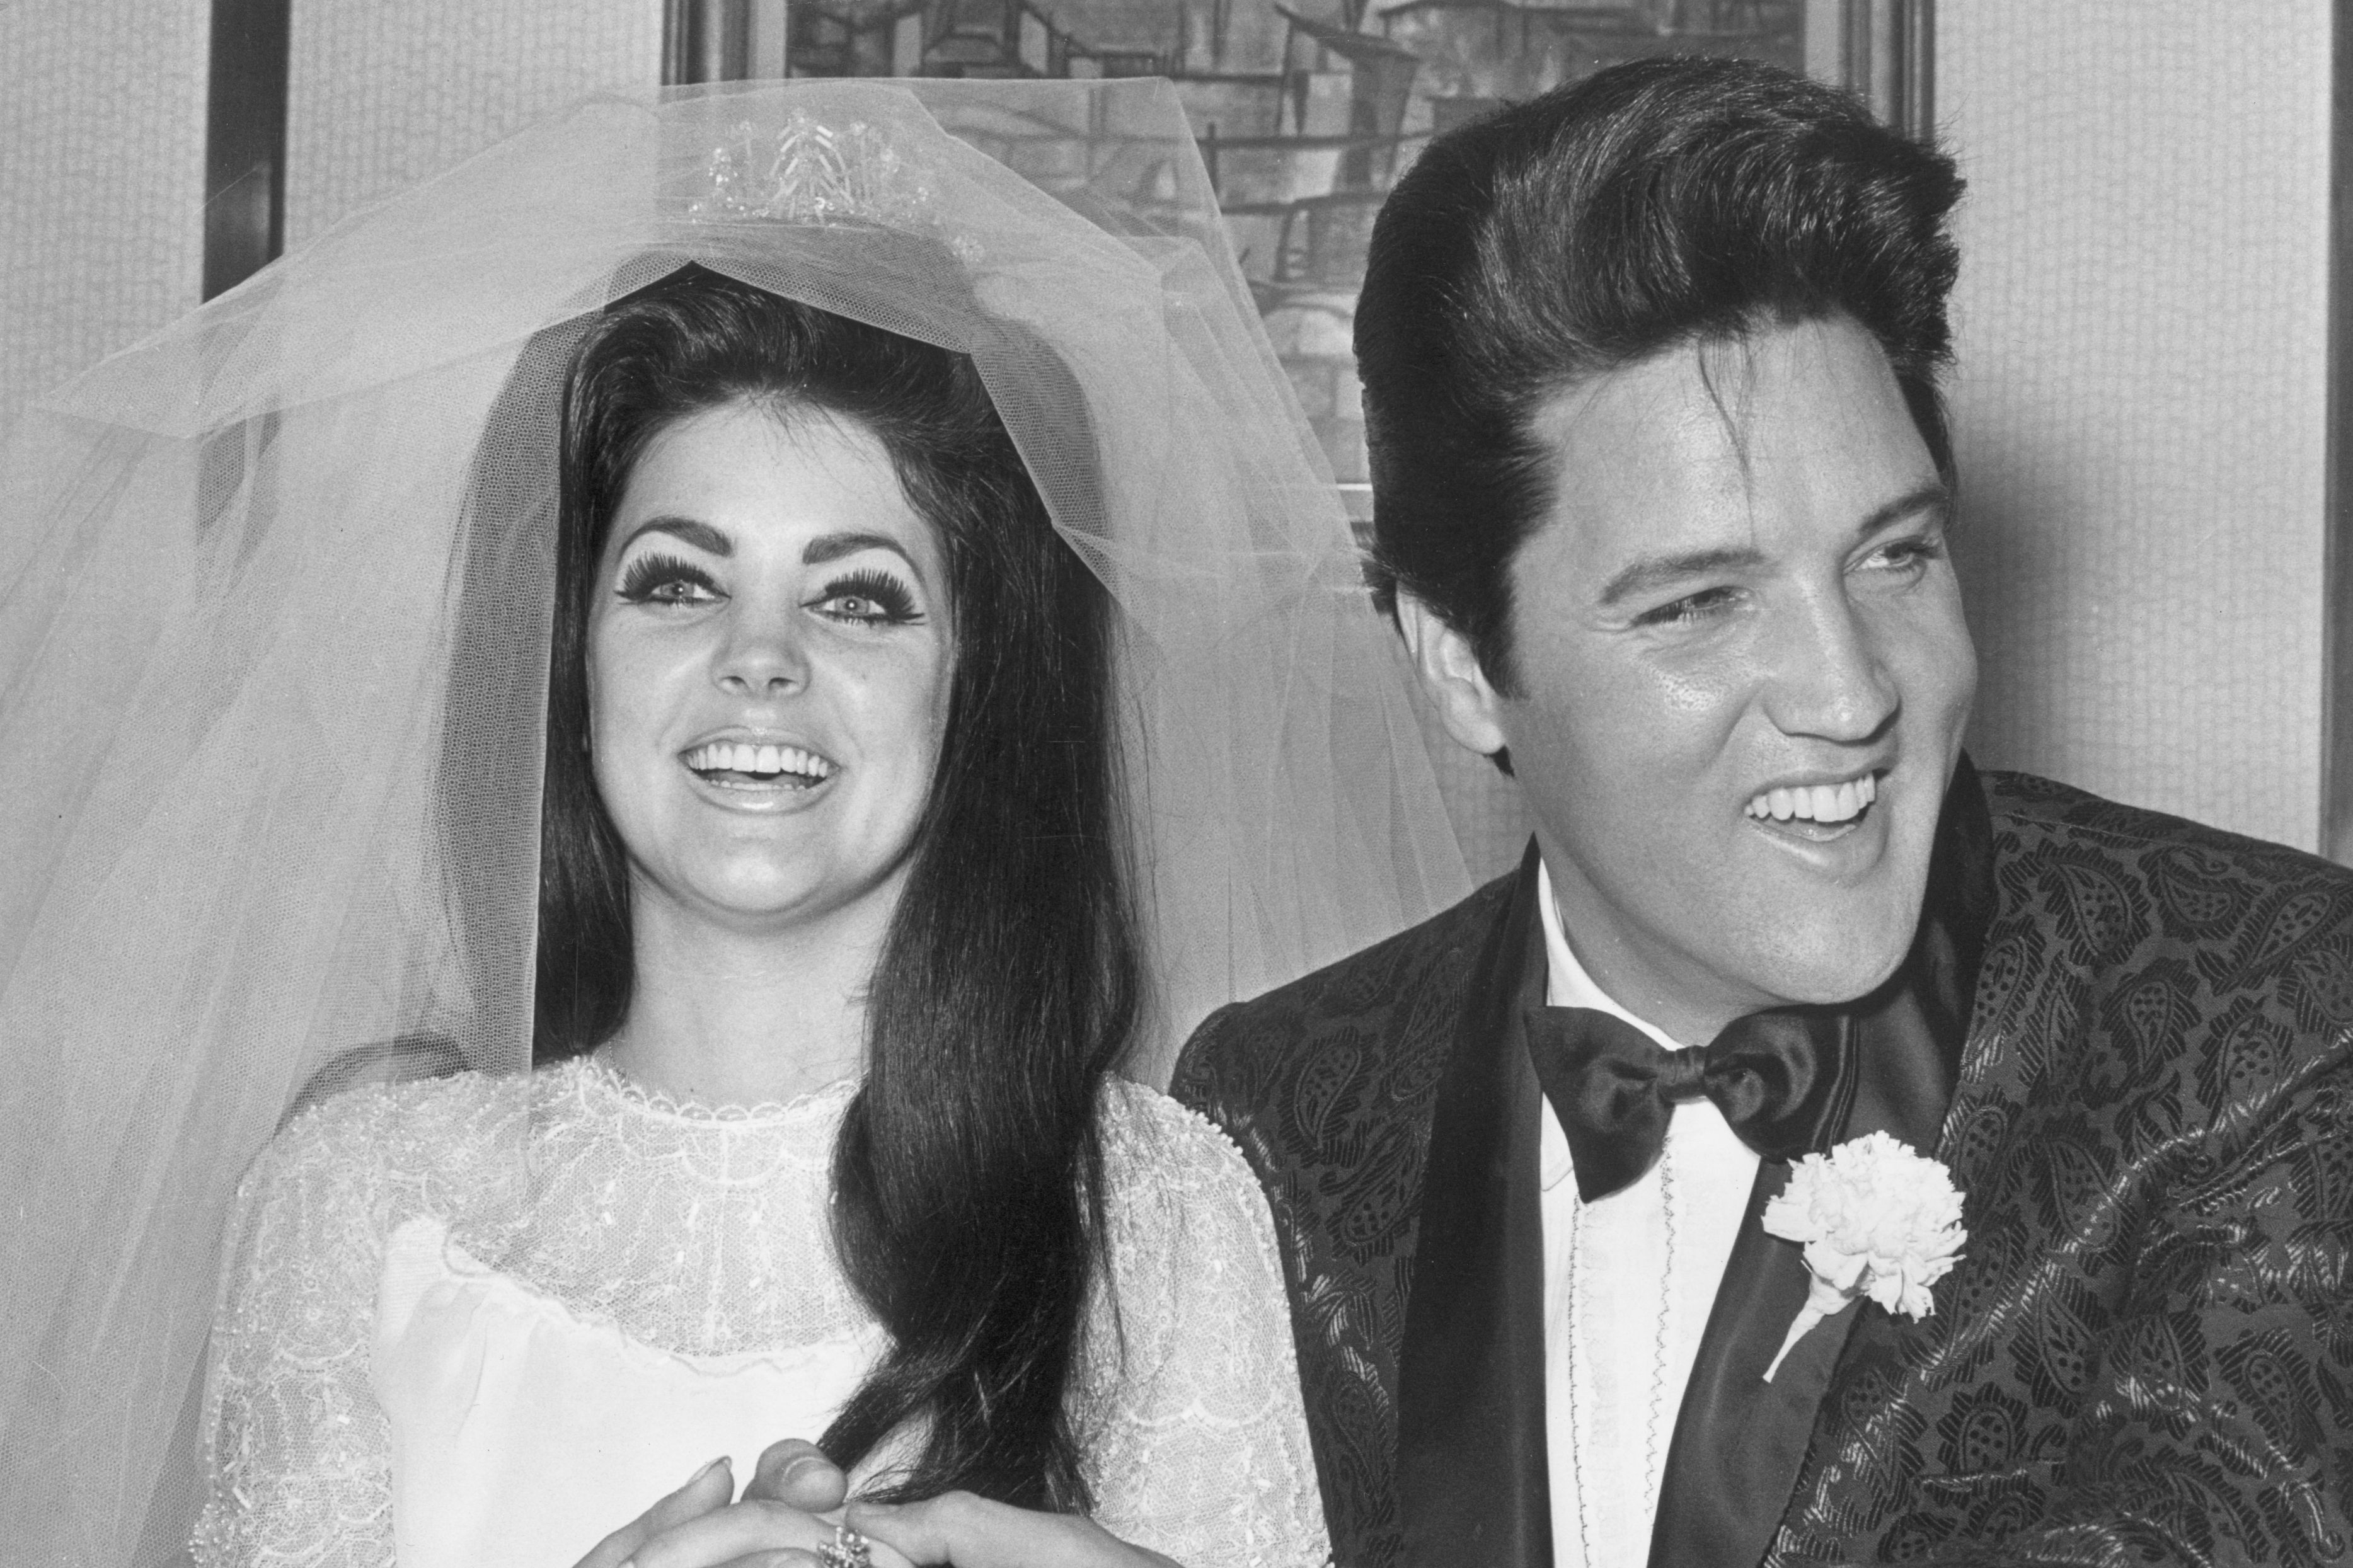 WATCH: Priscilla Presley on Why She Divorced Elvis Presley